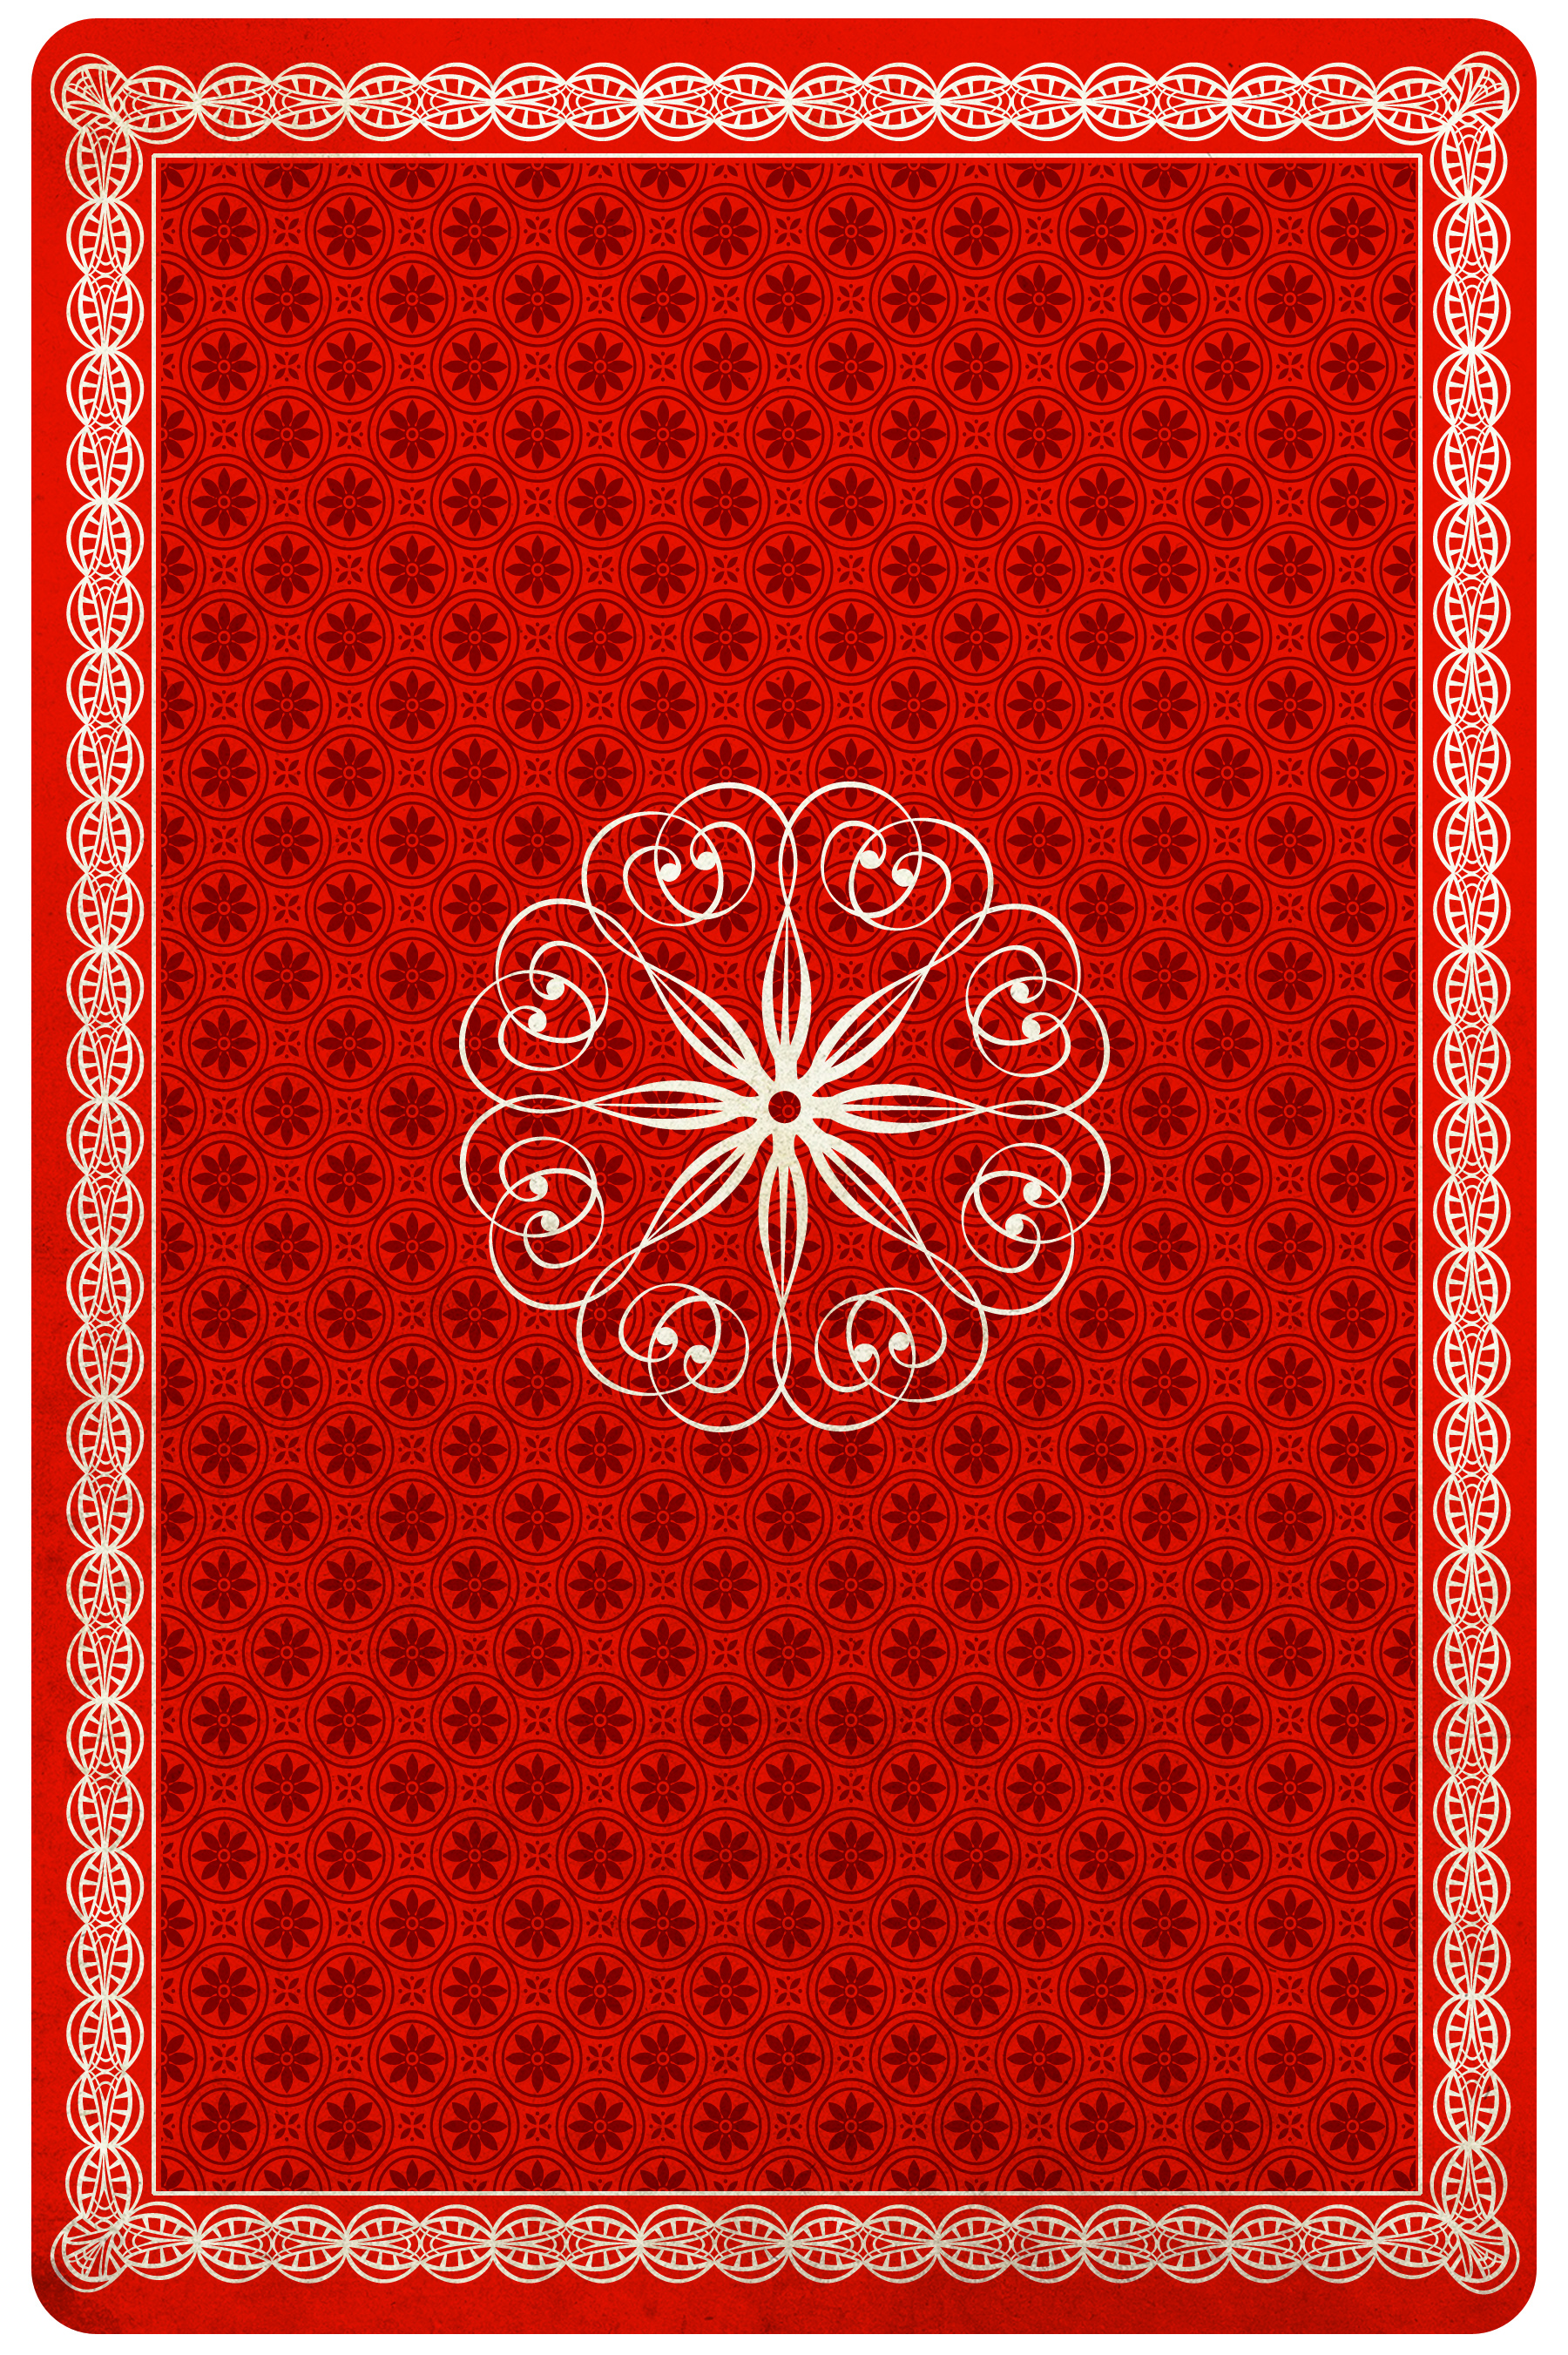 Playing card back clipart image freeuse download Free Poker Card, Download Free Clip Art, Free Clip Art on Clipart ... image freeuse download